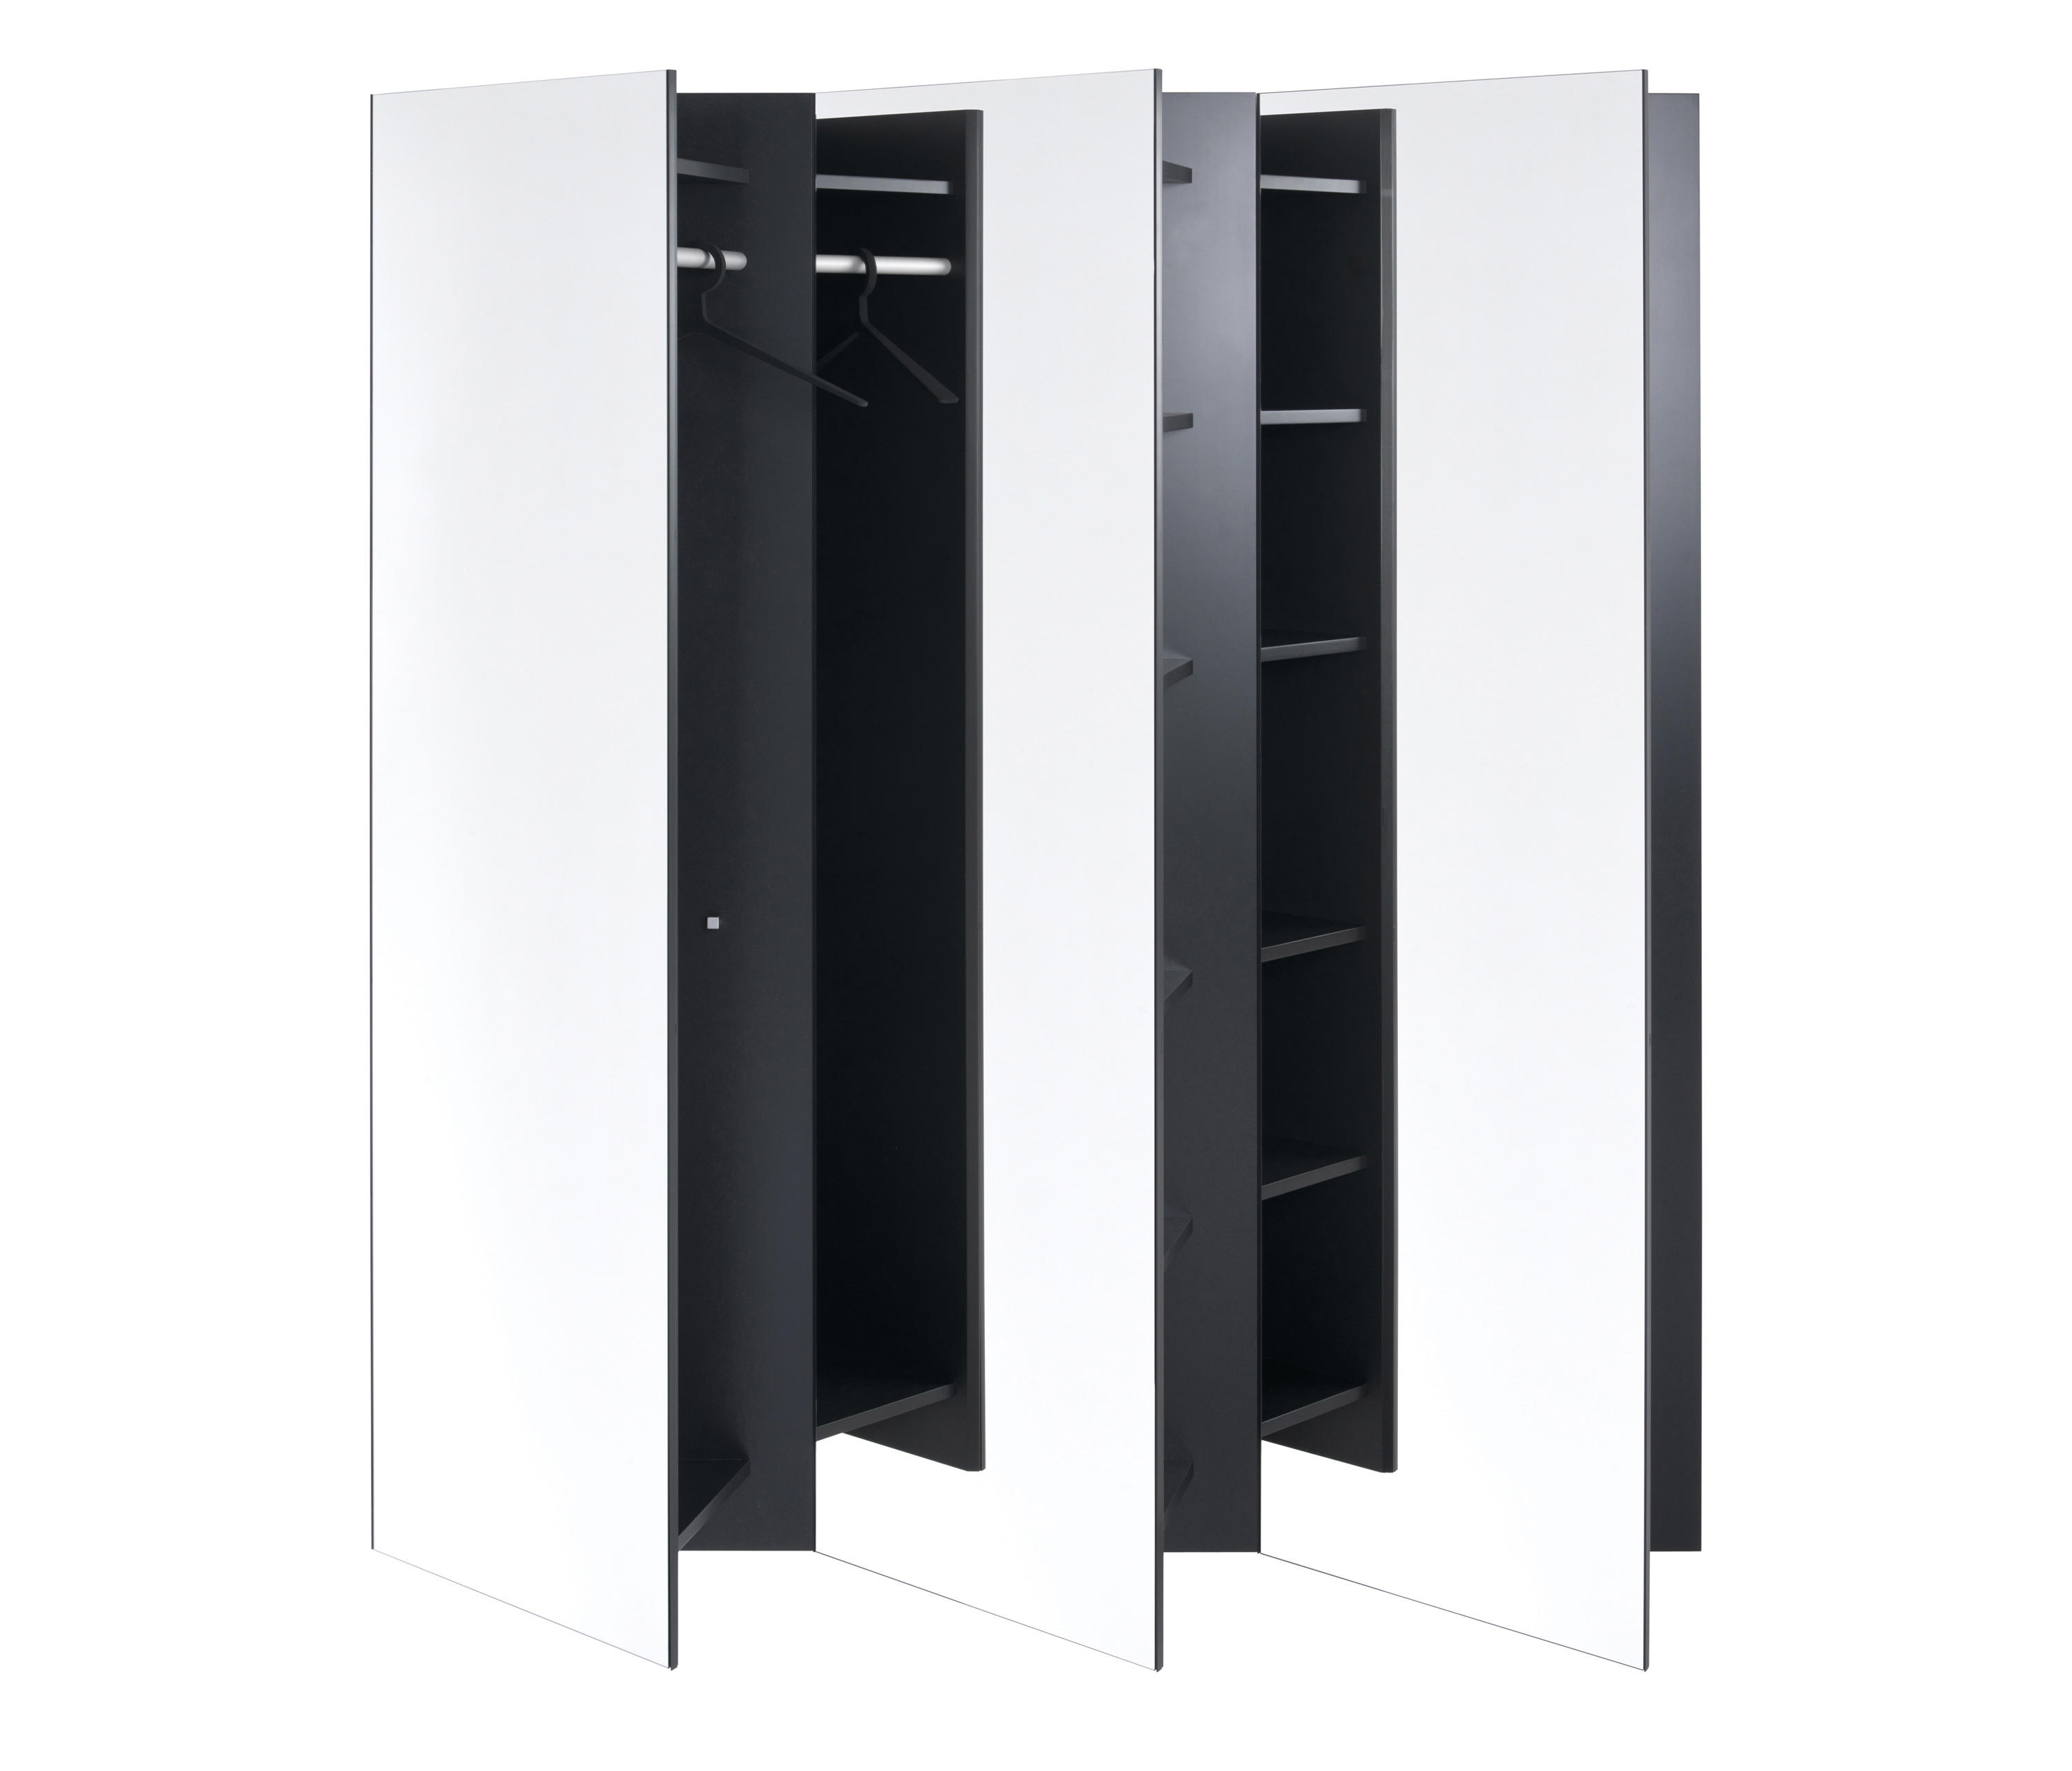 skew wall mounted wardrobe built in wardrobes from sch nbuch architonic. Black Bedroom Furniture Sets. Home Design Ideas